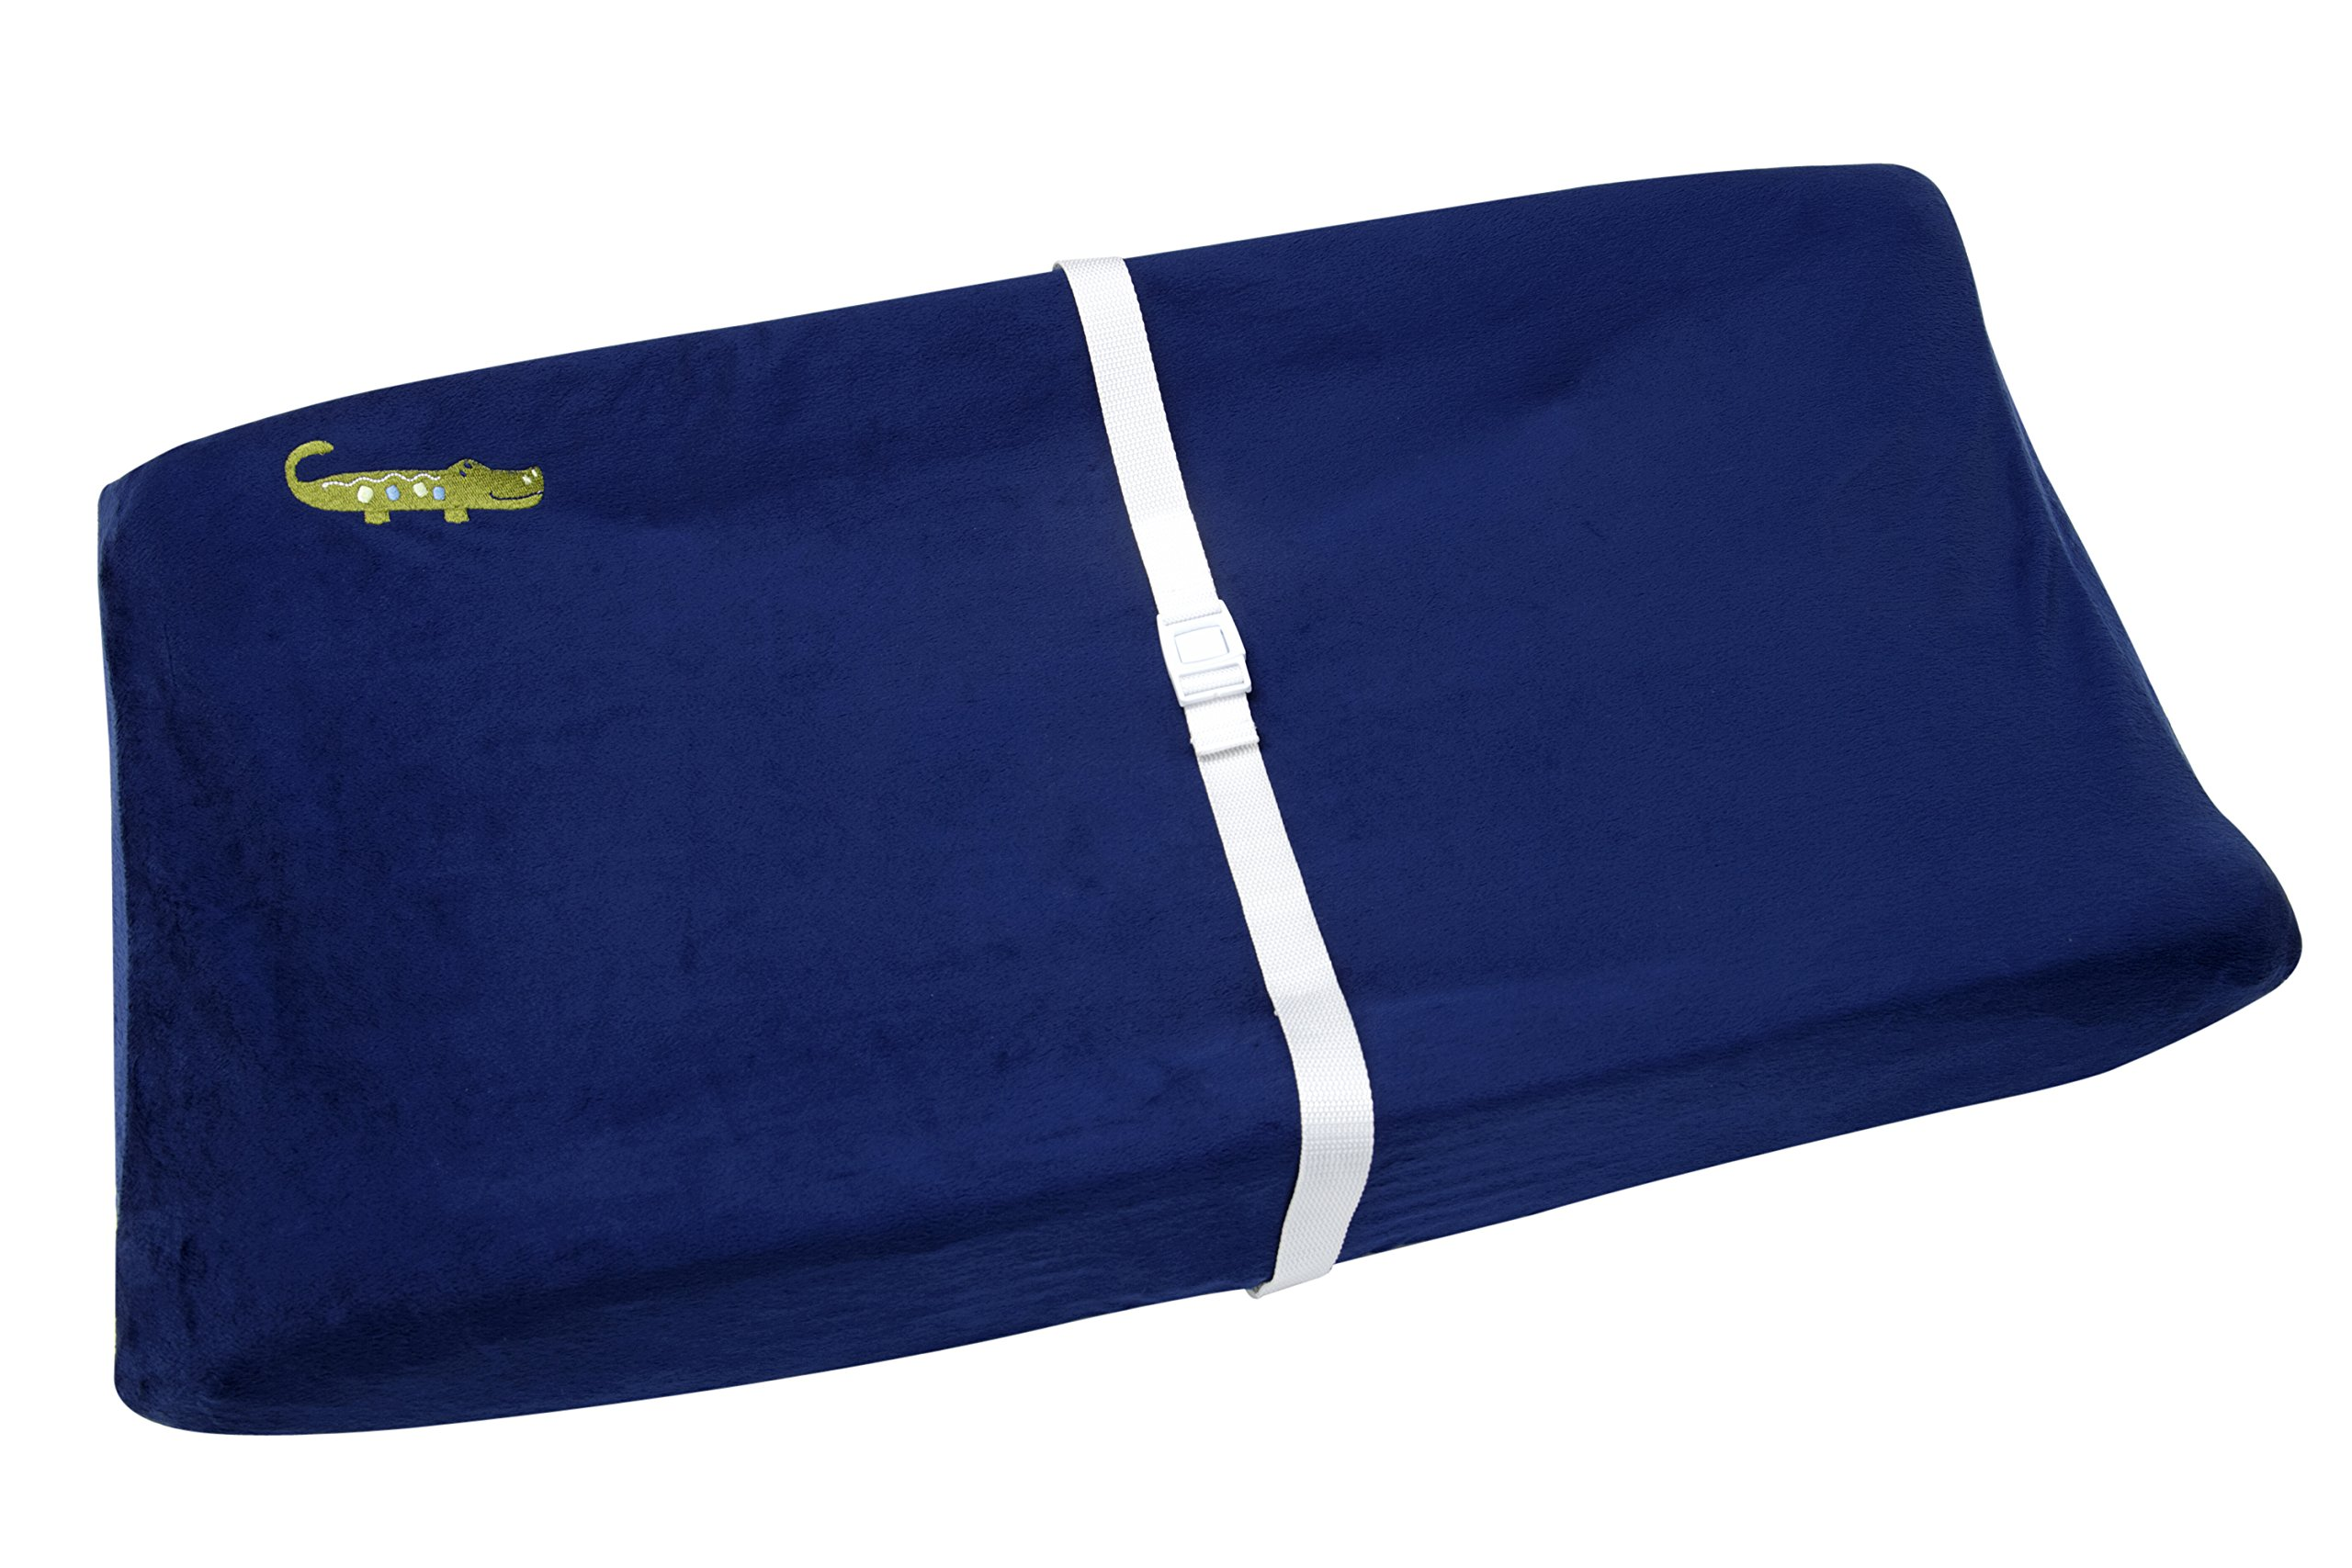 NoJo Alligator Blues Contoured Changing Table Cover